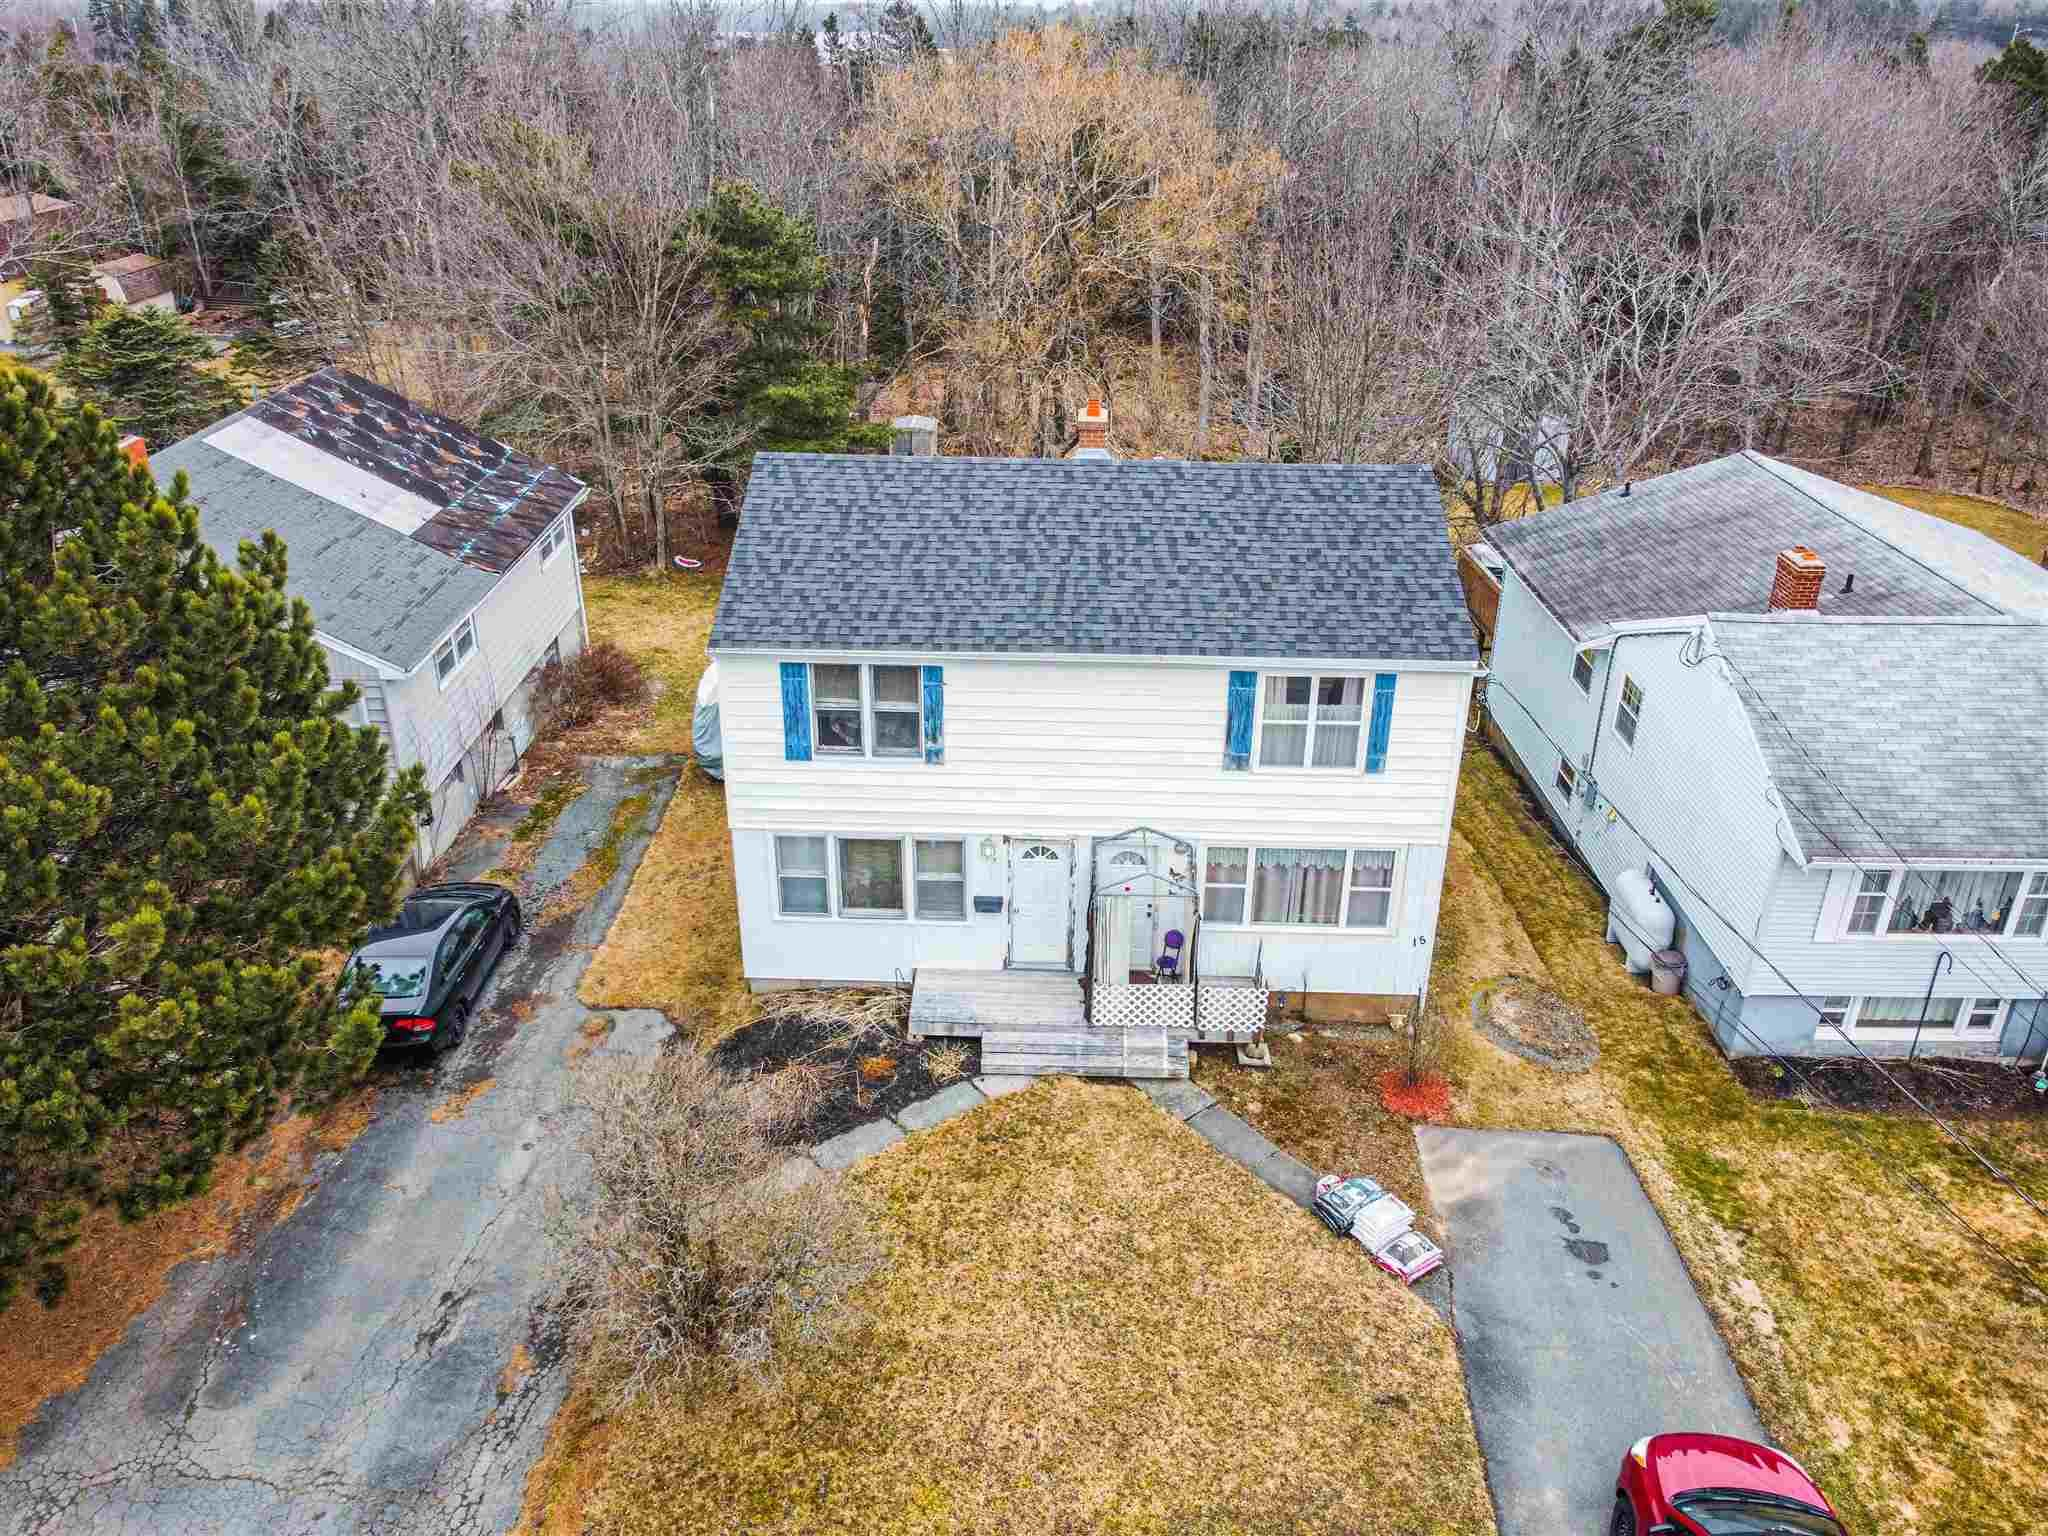 Main Photo: 15 & 17 Fader Street in Dartmouth: 17-Woodlawn, Portland Estates, Nantucket Multi-Family for sale (Halifax-Dartmouth)  : MLS®# 202106822